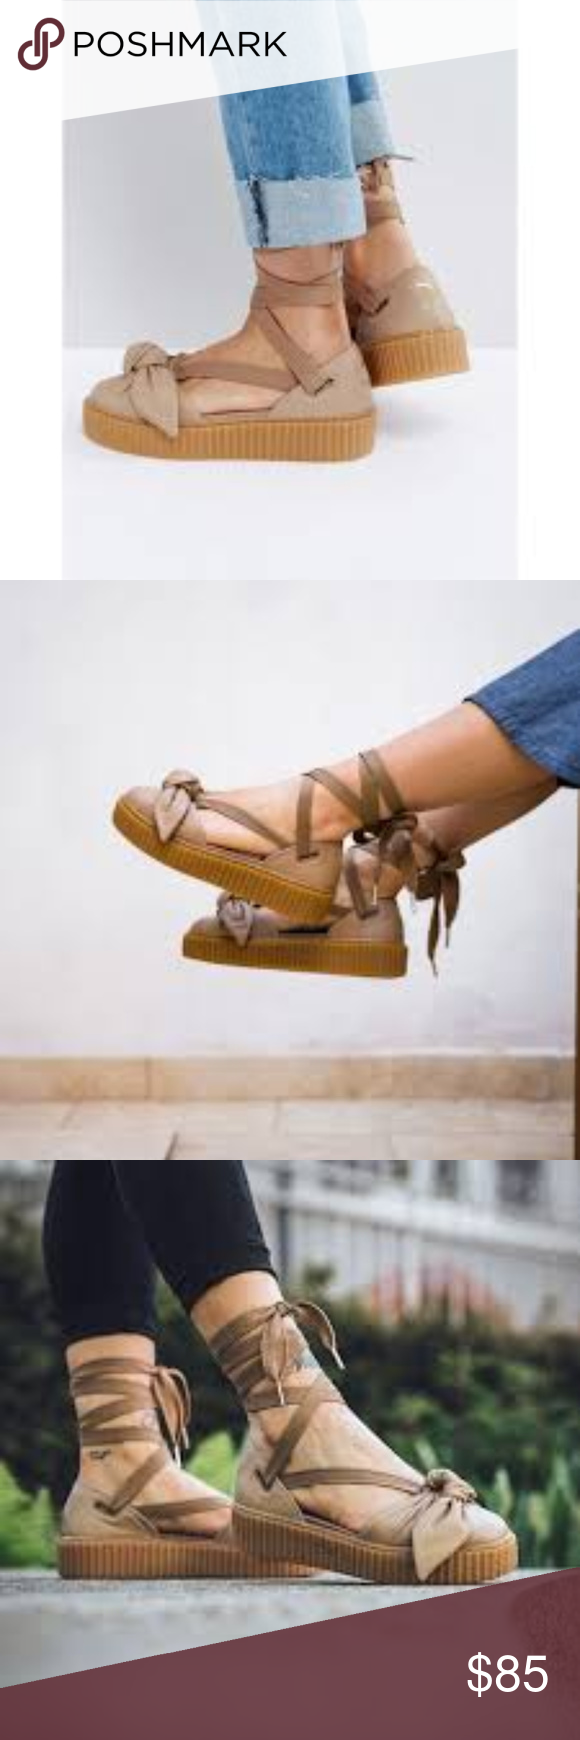 87042604769 Fenty Puma by Rihanna Leather Bow Creeper Sandal New! Fenty Puma by Rihanna  leather creeper sandal in nude color. Stock pics are for styling only.